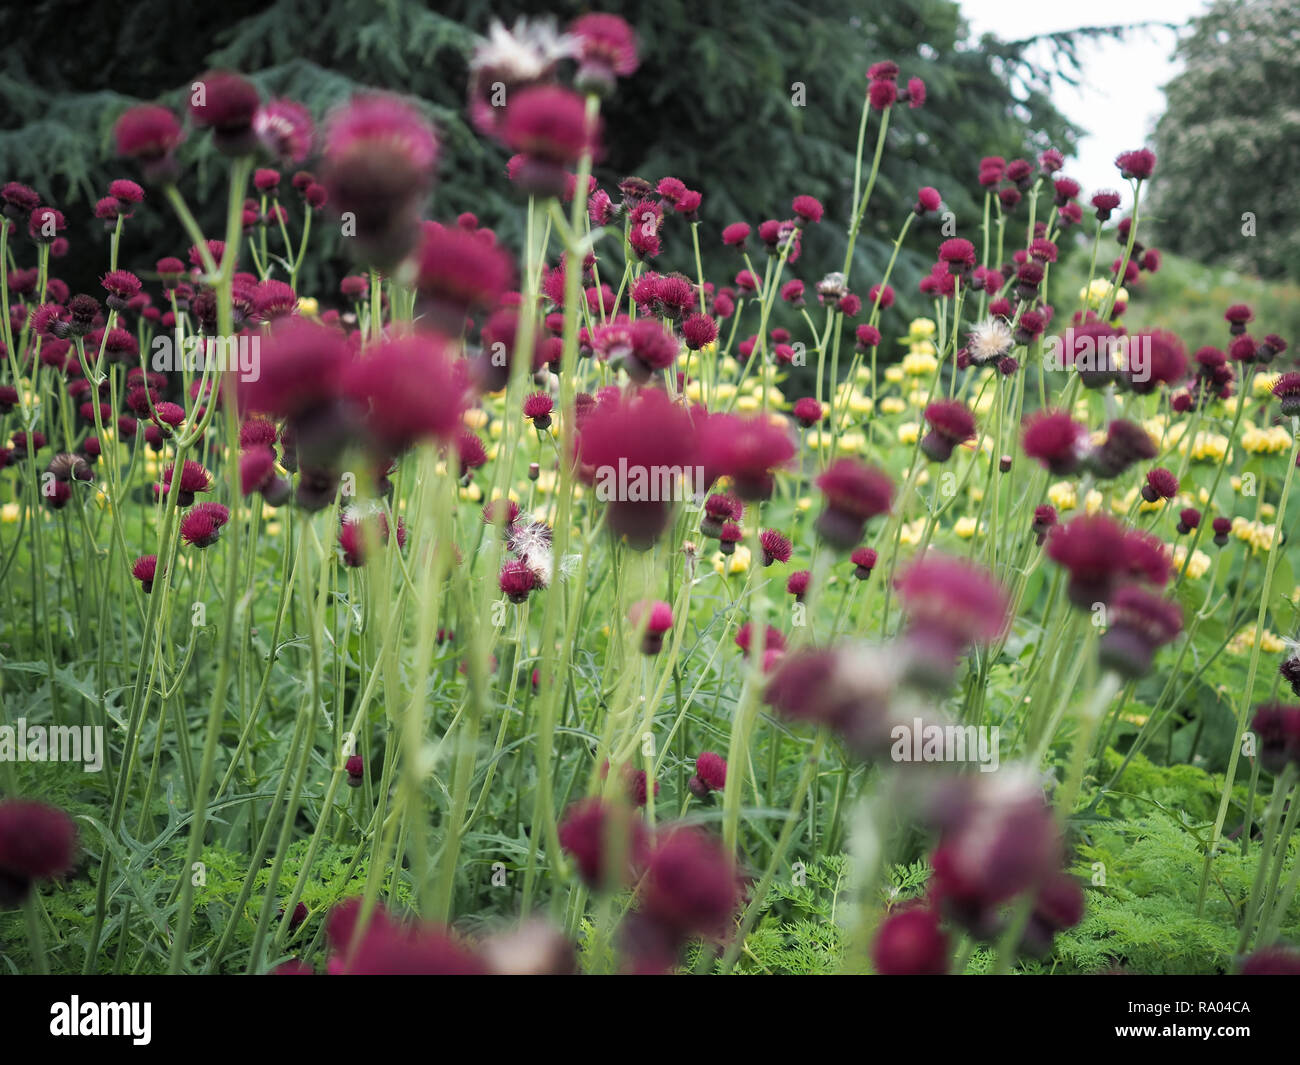 Red brook thistle blooms in a garden - Stock Image